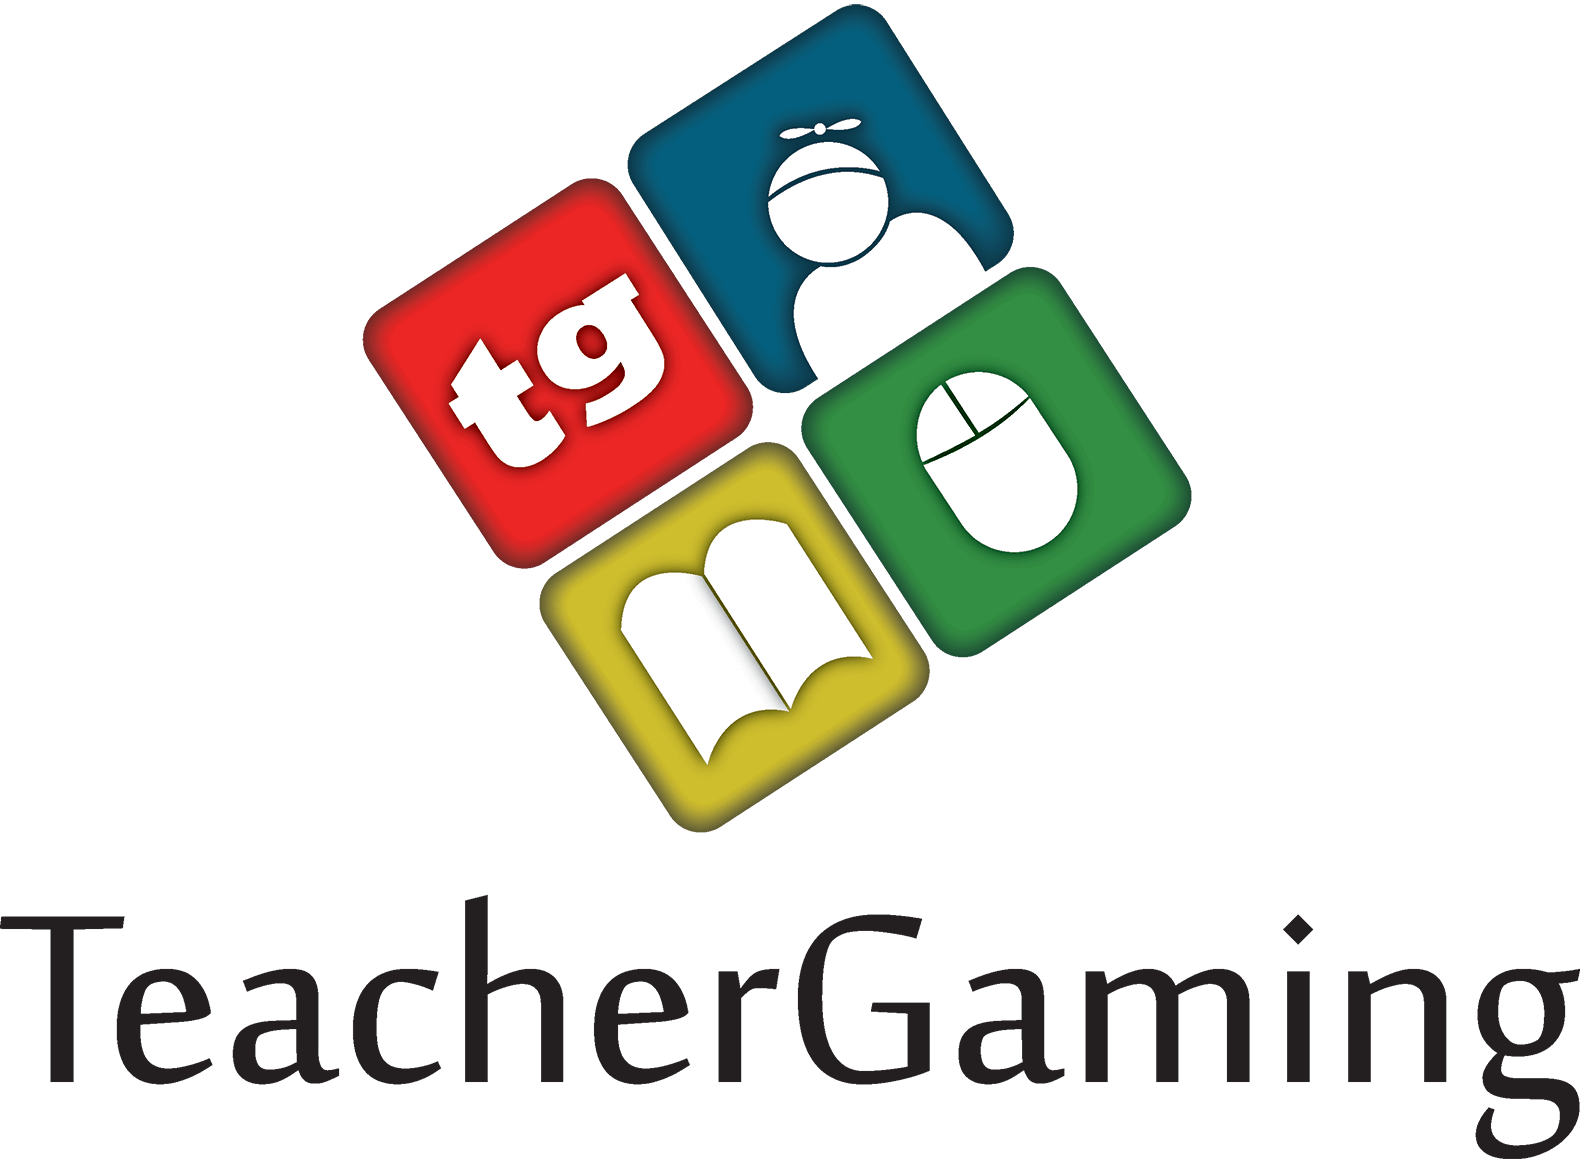 TeacherGaming LLC